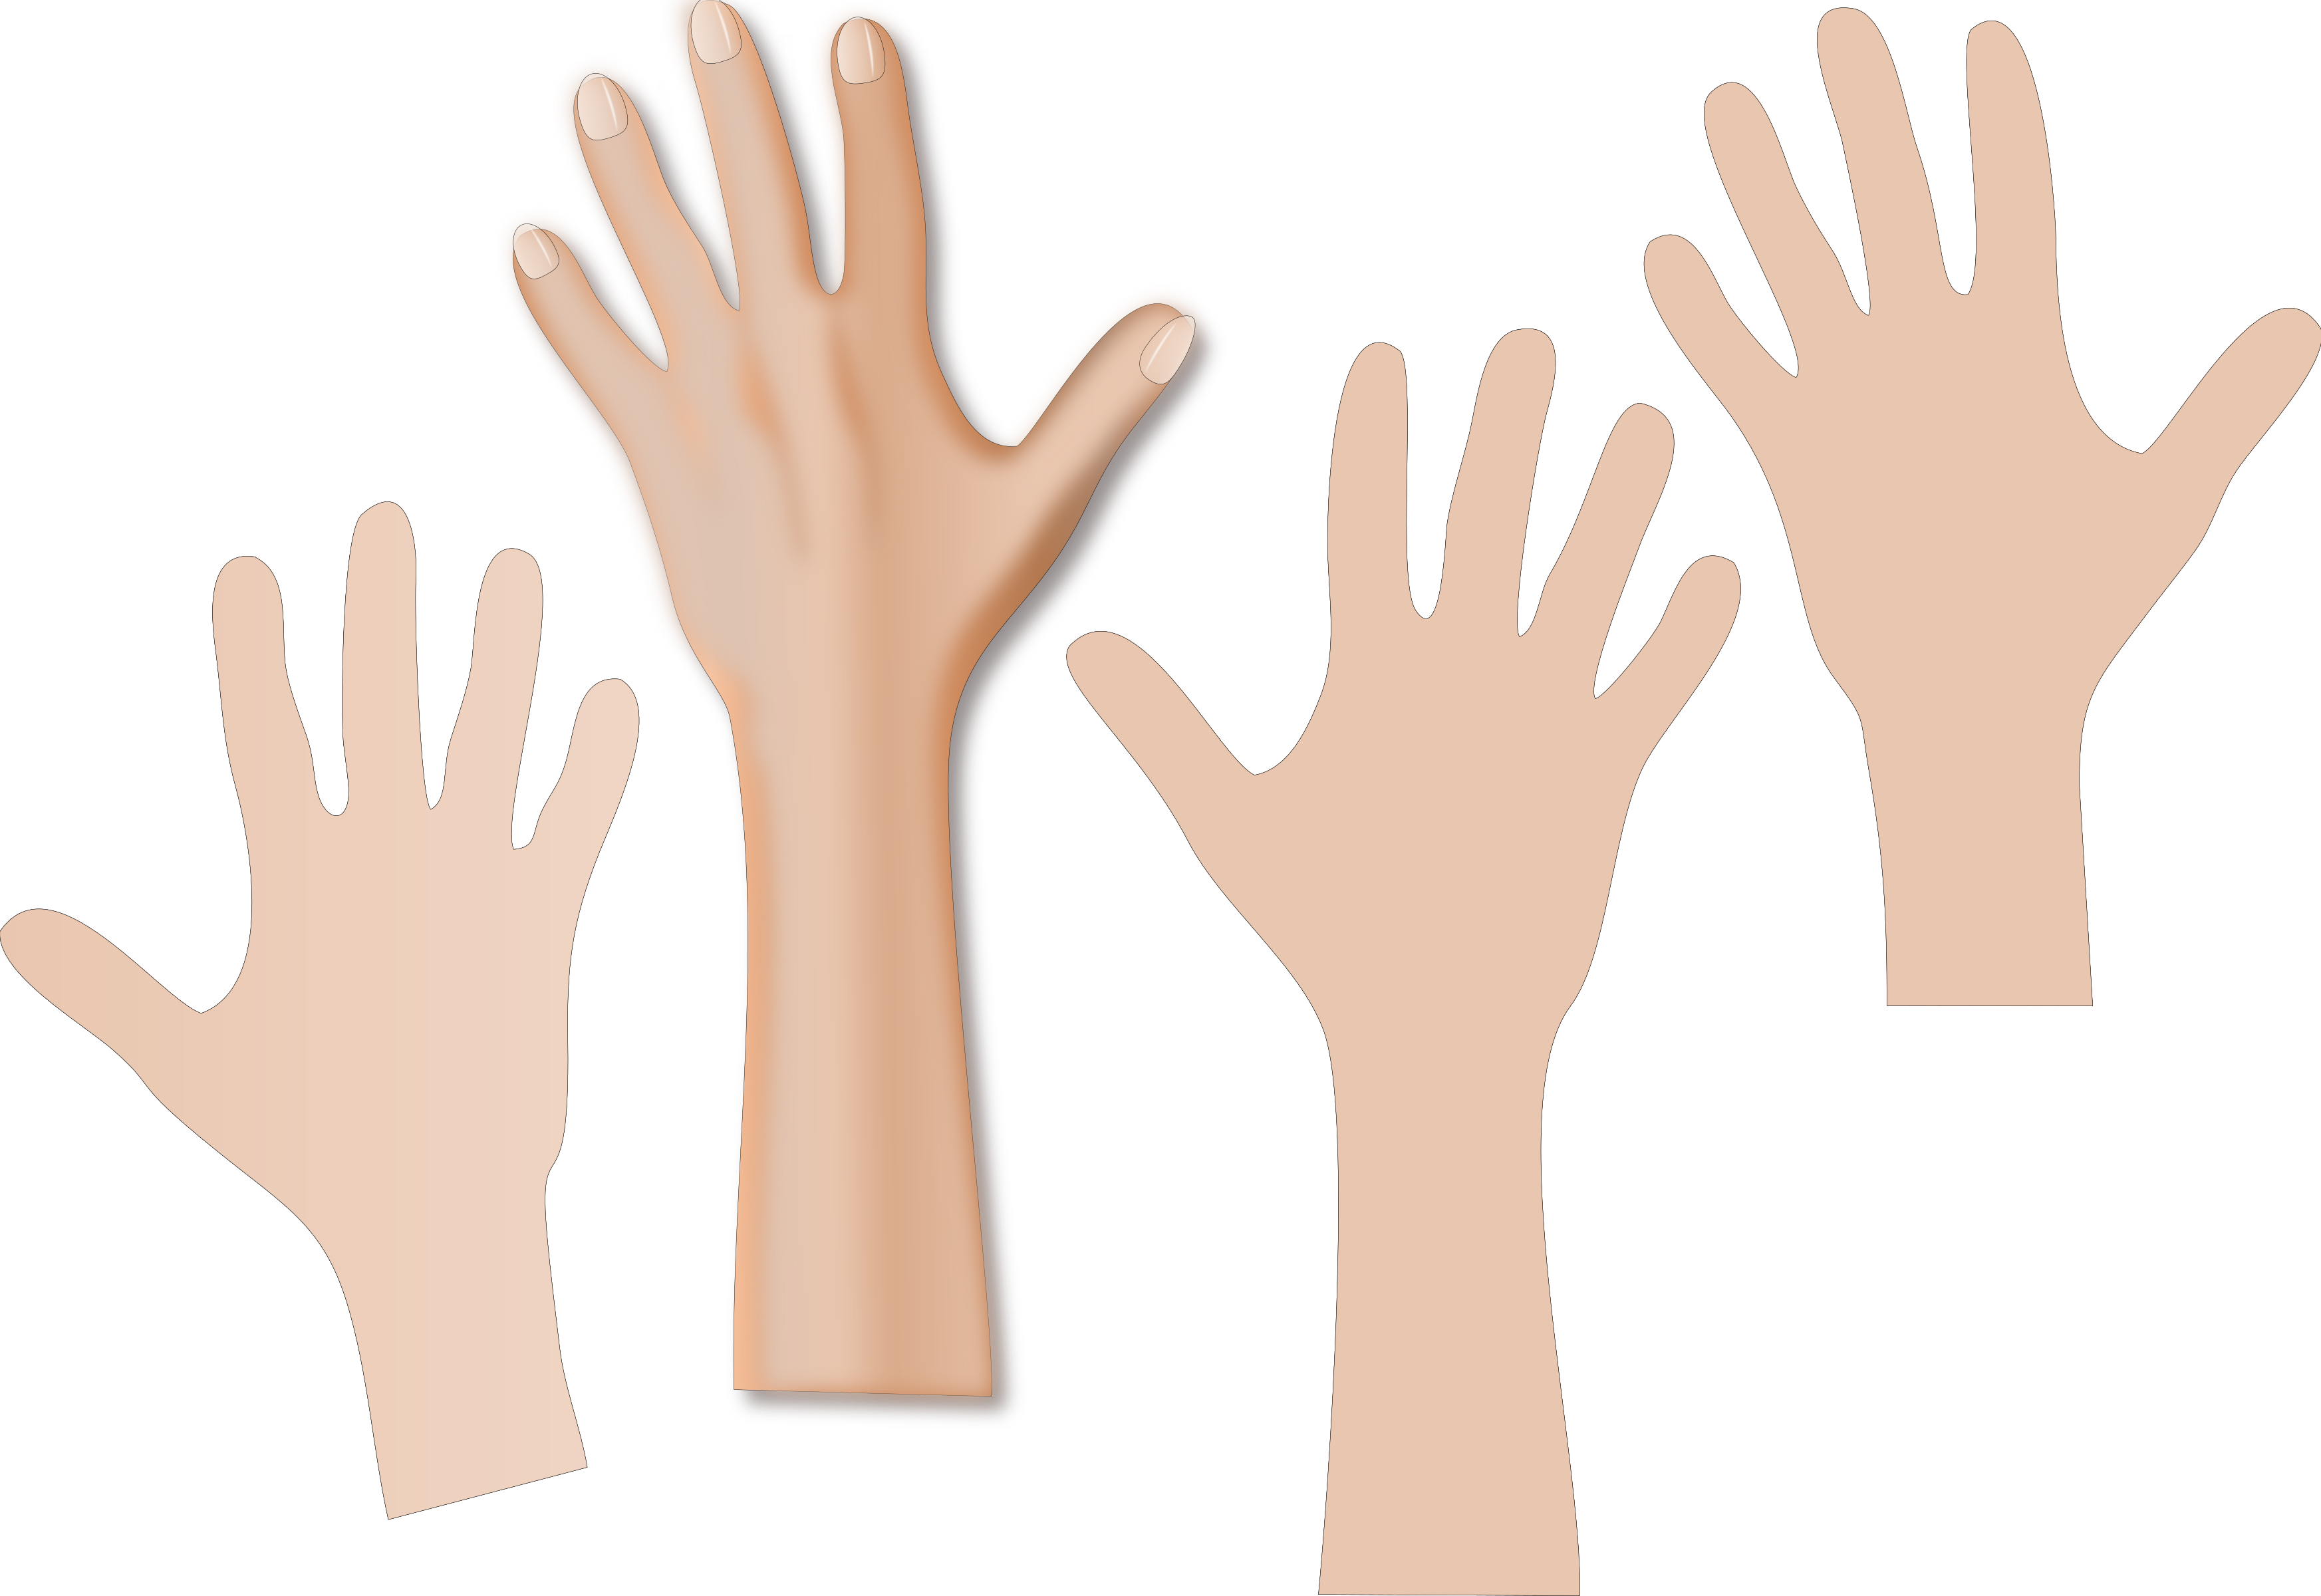 Hand reaching png. Hands with skin color